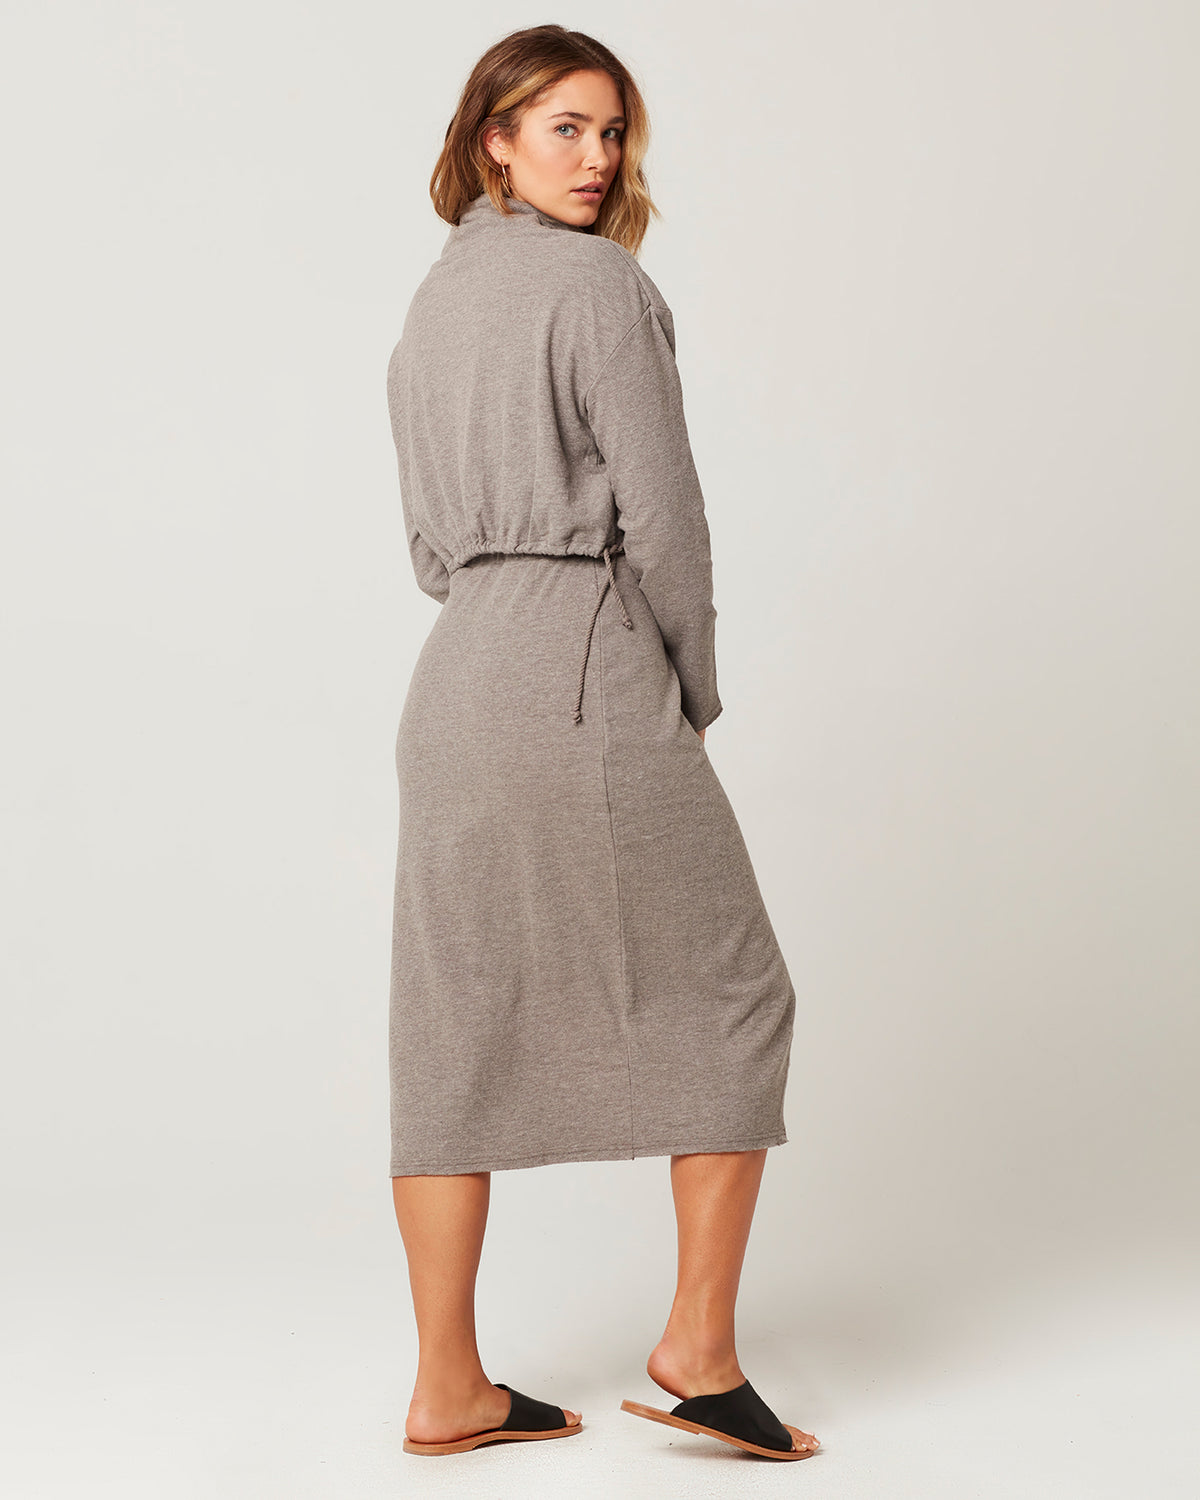 Heather Grey | Model: Chanel (size: M)